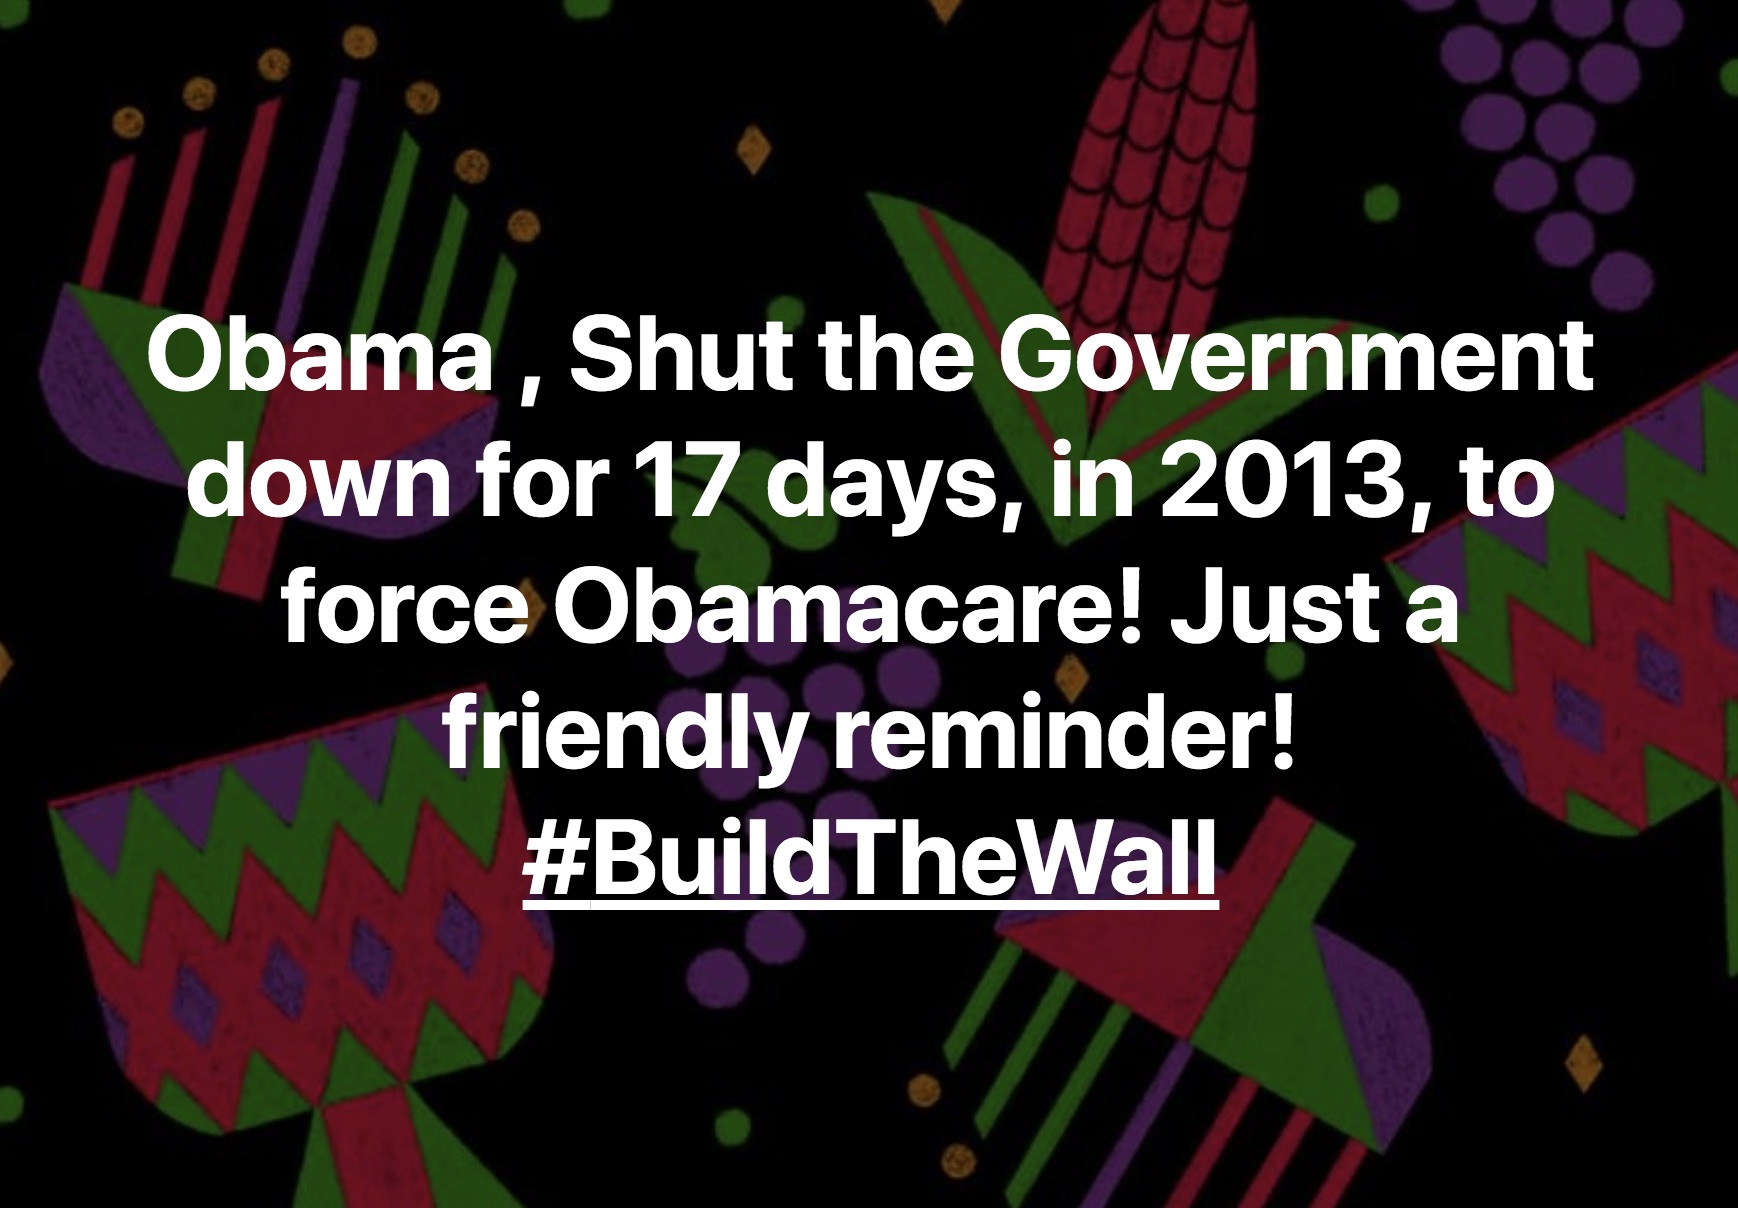 Jim_Benvie_Obama-Shut-the-Government-down-for-17-days-in-2013-to-force-Obamacare-Just-a-friendly-reminder-BuildTheWall